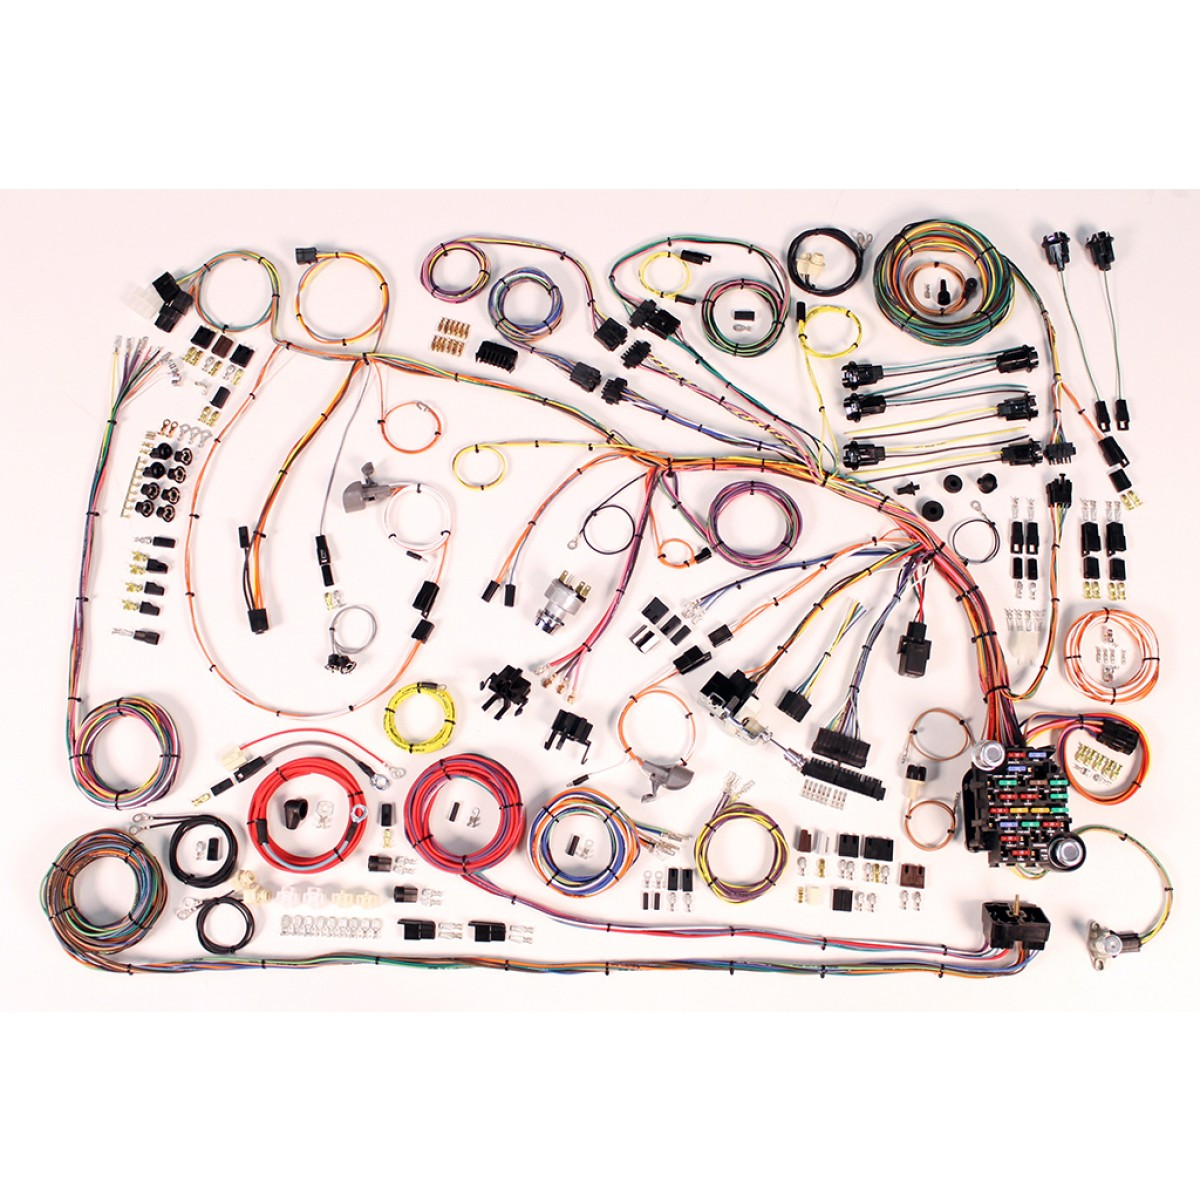 1966 Caprice Wiring Harness Diagram Will Be A Thing Chevrolet Impala For 1968 Wire Complete Kit Rh Code510 Com Chevy